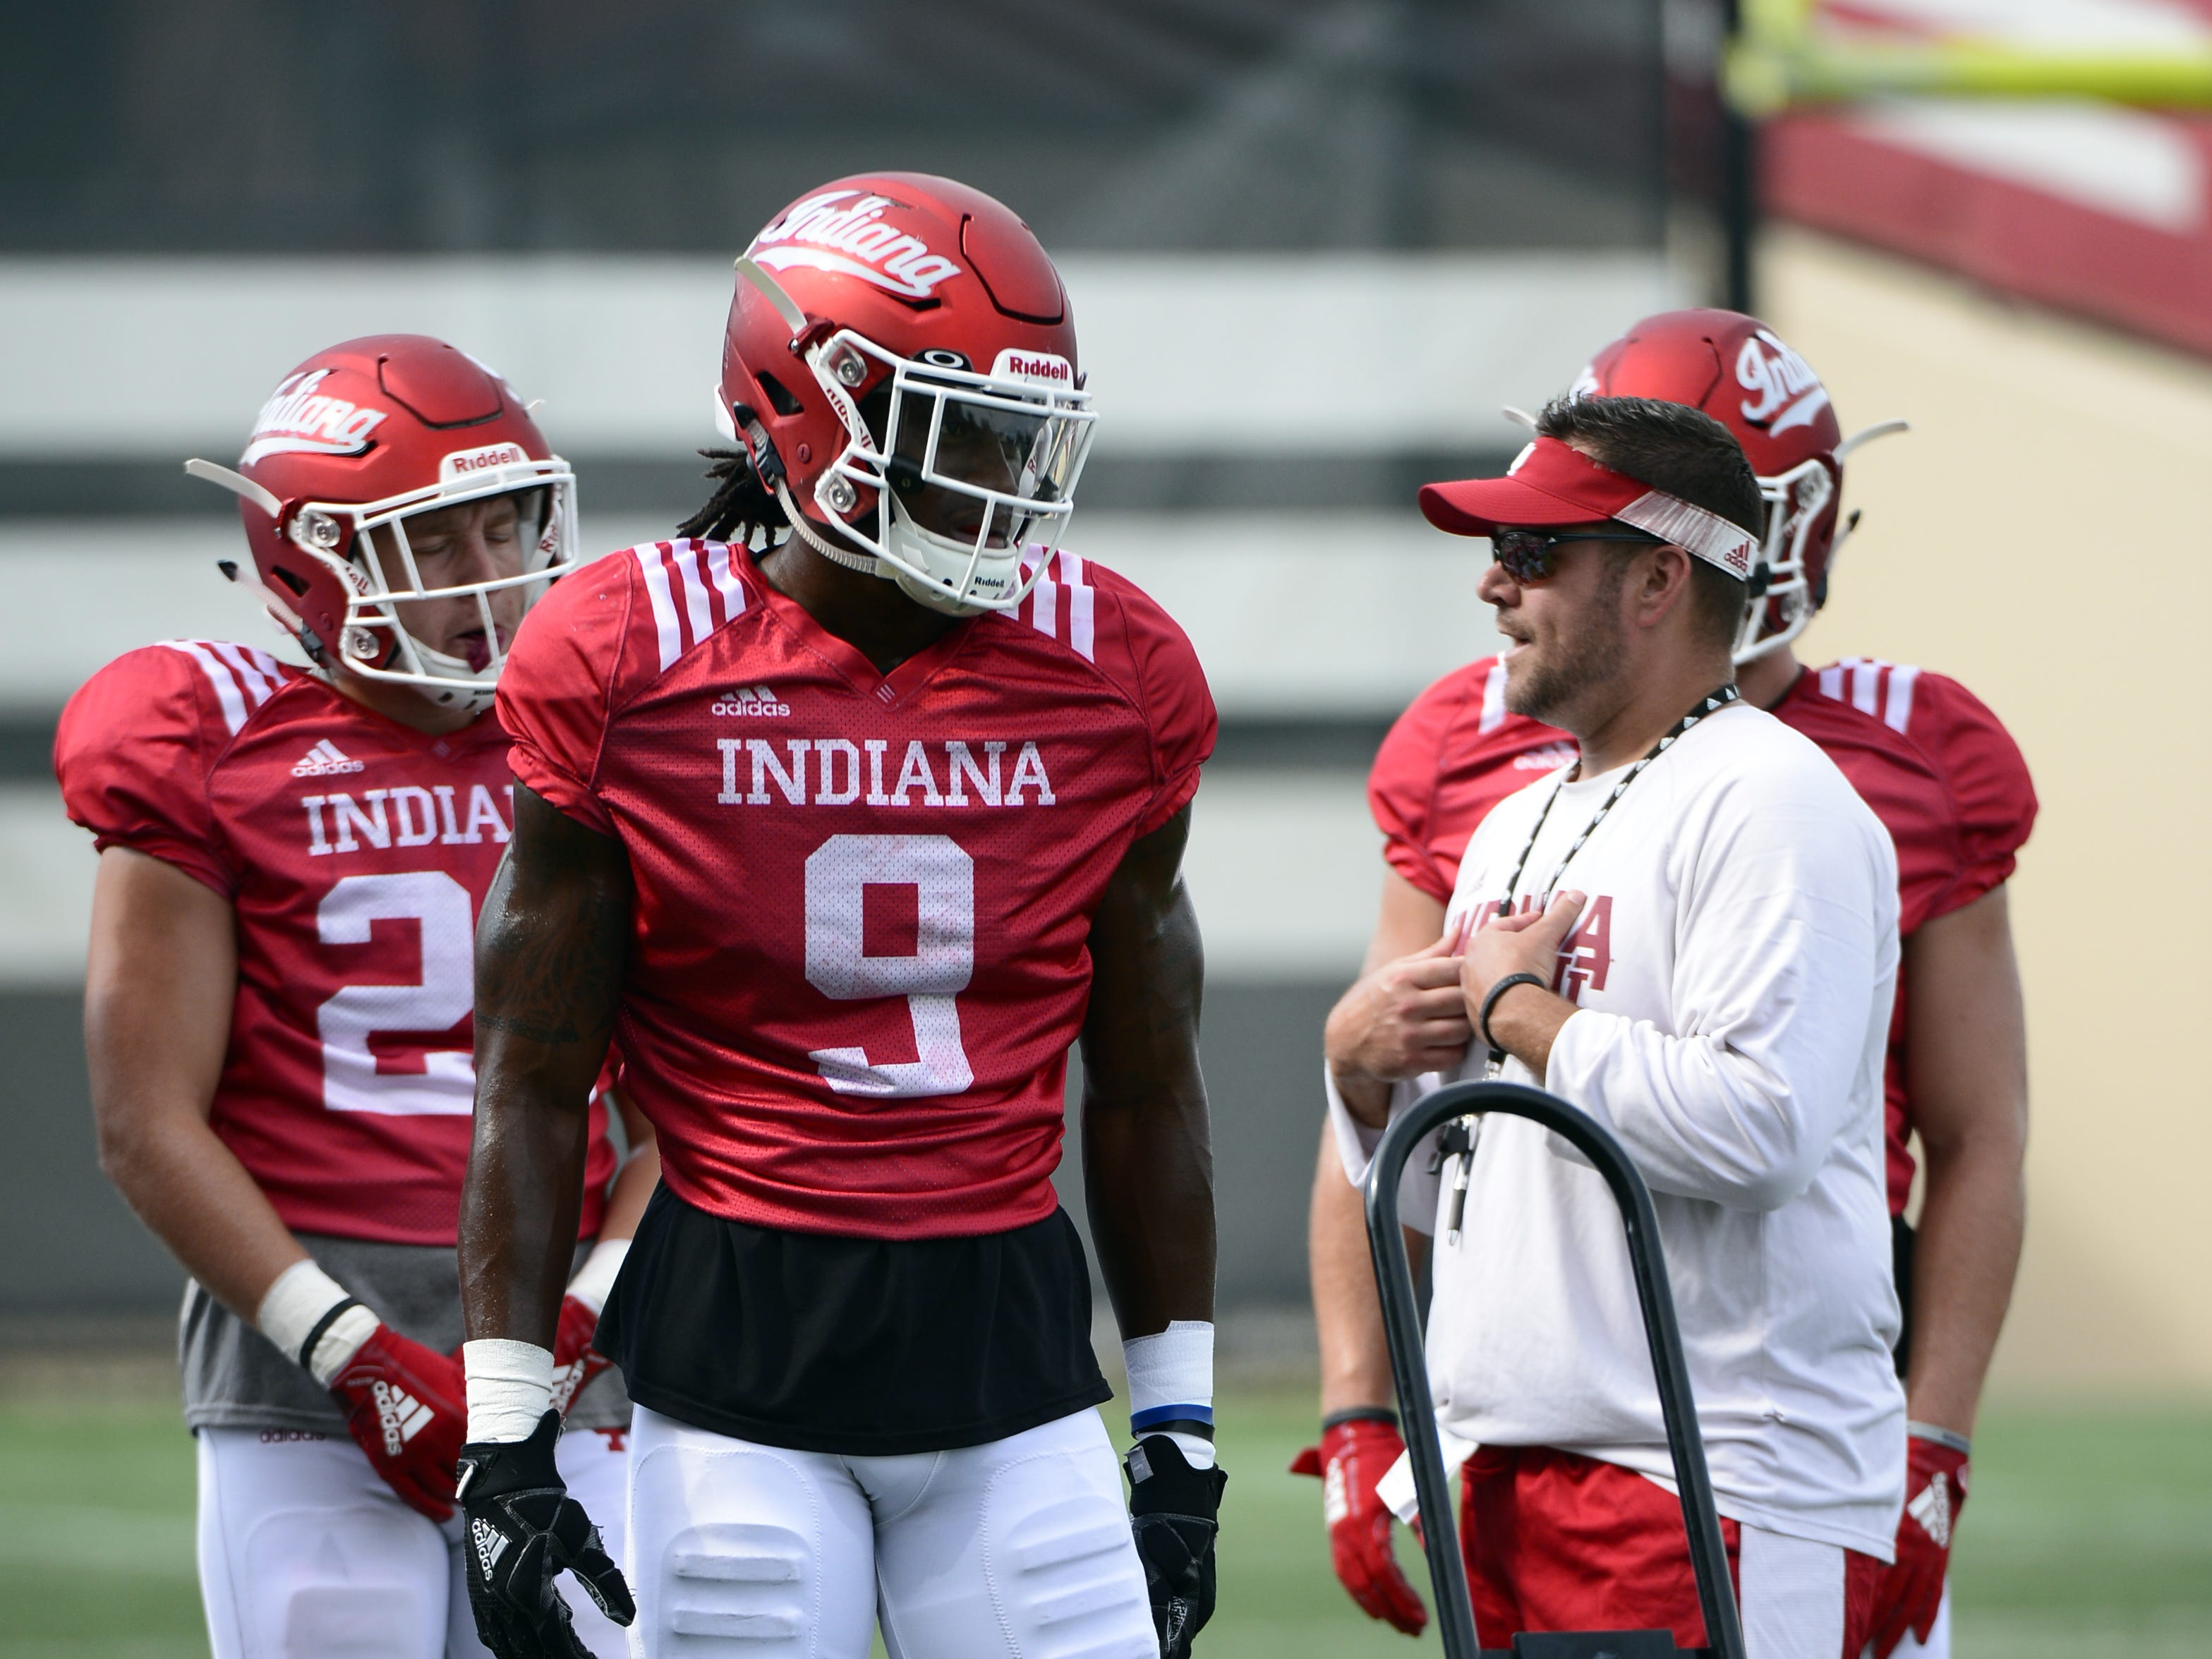 Indiana Hoosiers defensive back Jonathan Crawford (9) talks to his coach during practice at Mellencamp Pavilion in Bloomington, Ind., on Friday, August 10, 2018.